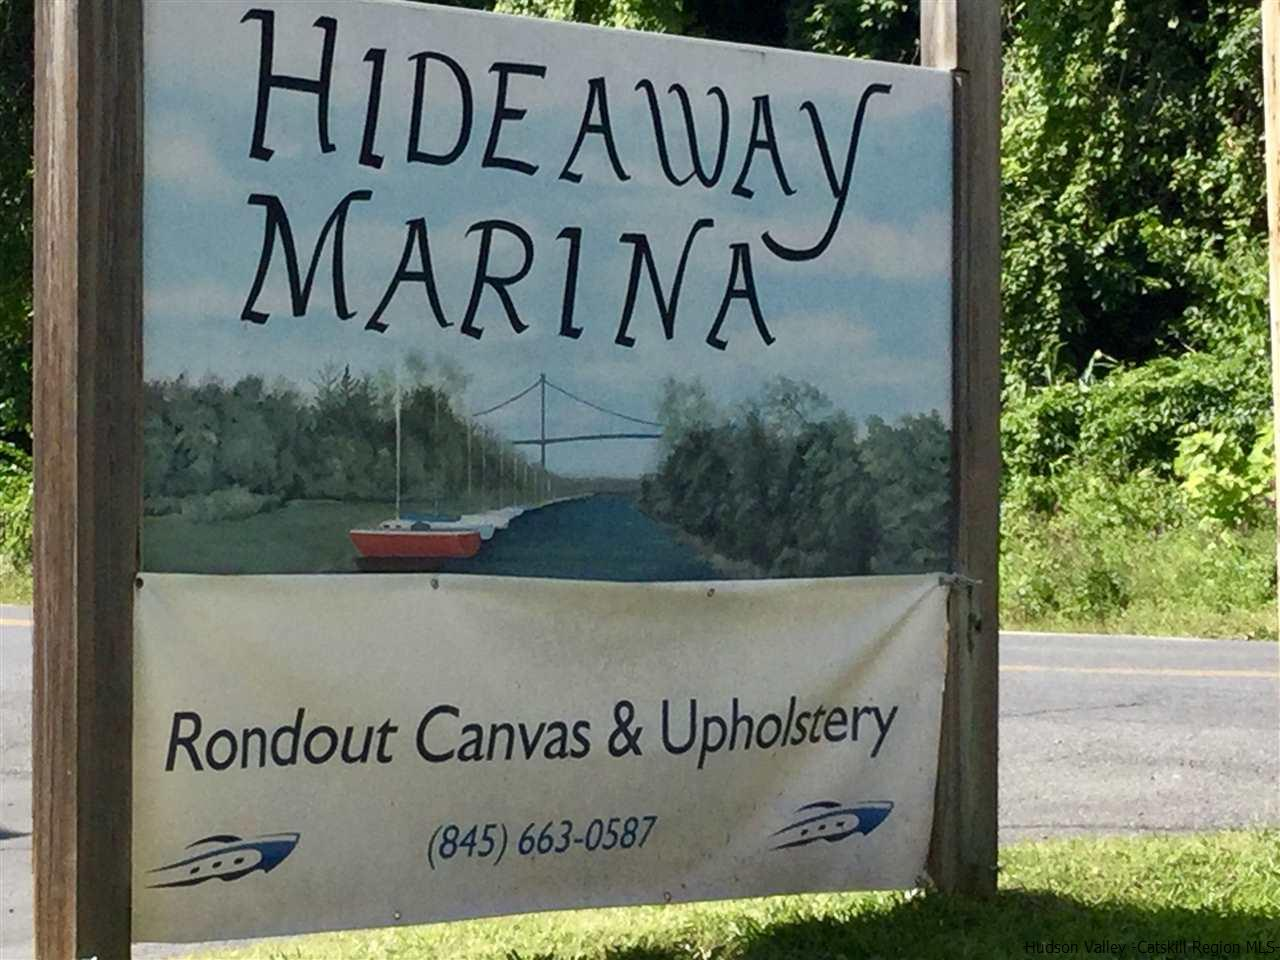 Short drive from Riverside condos to the Marina  where you can sail off into the Hudson River